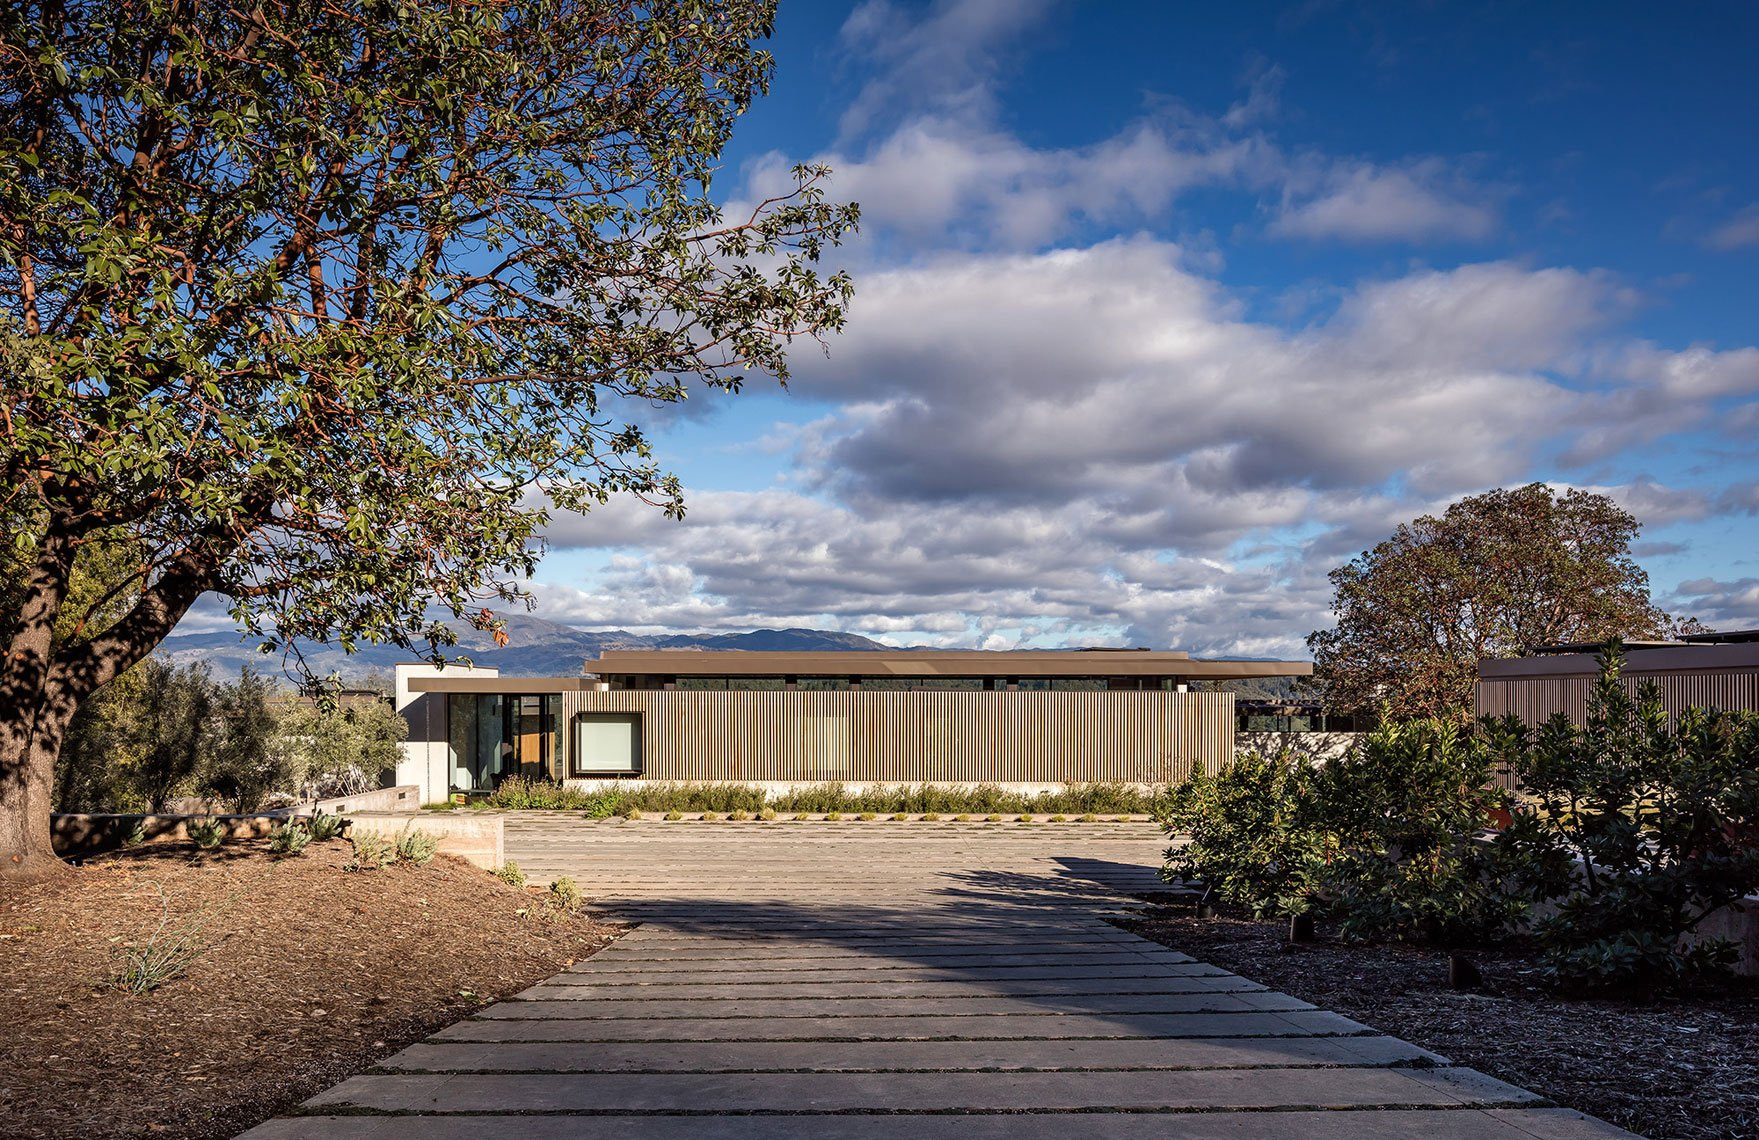 Dry Creek house - john maniscalco architecture - front view